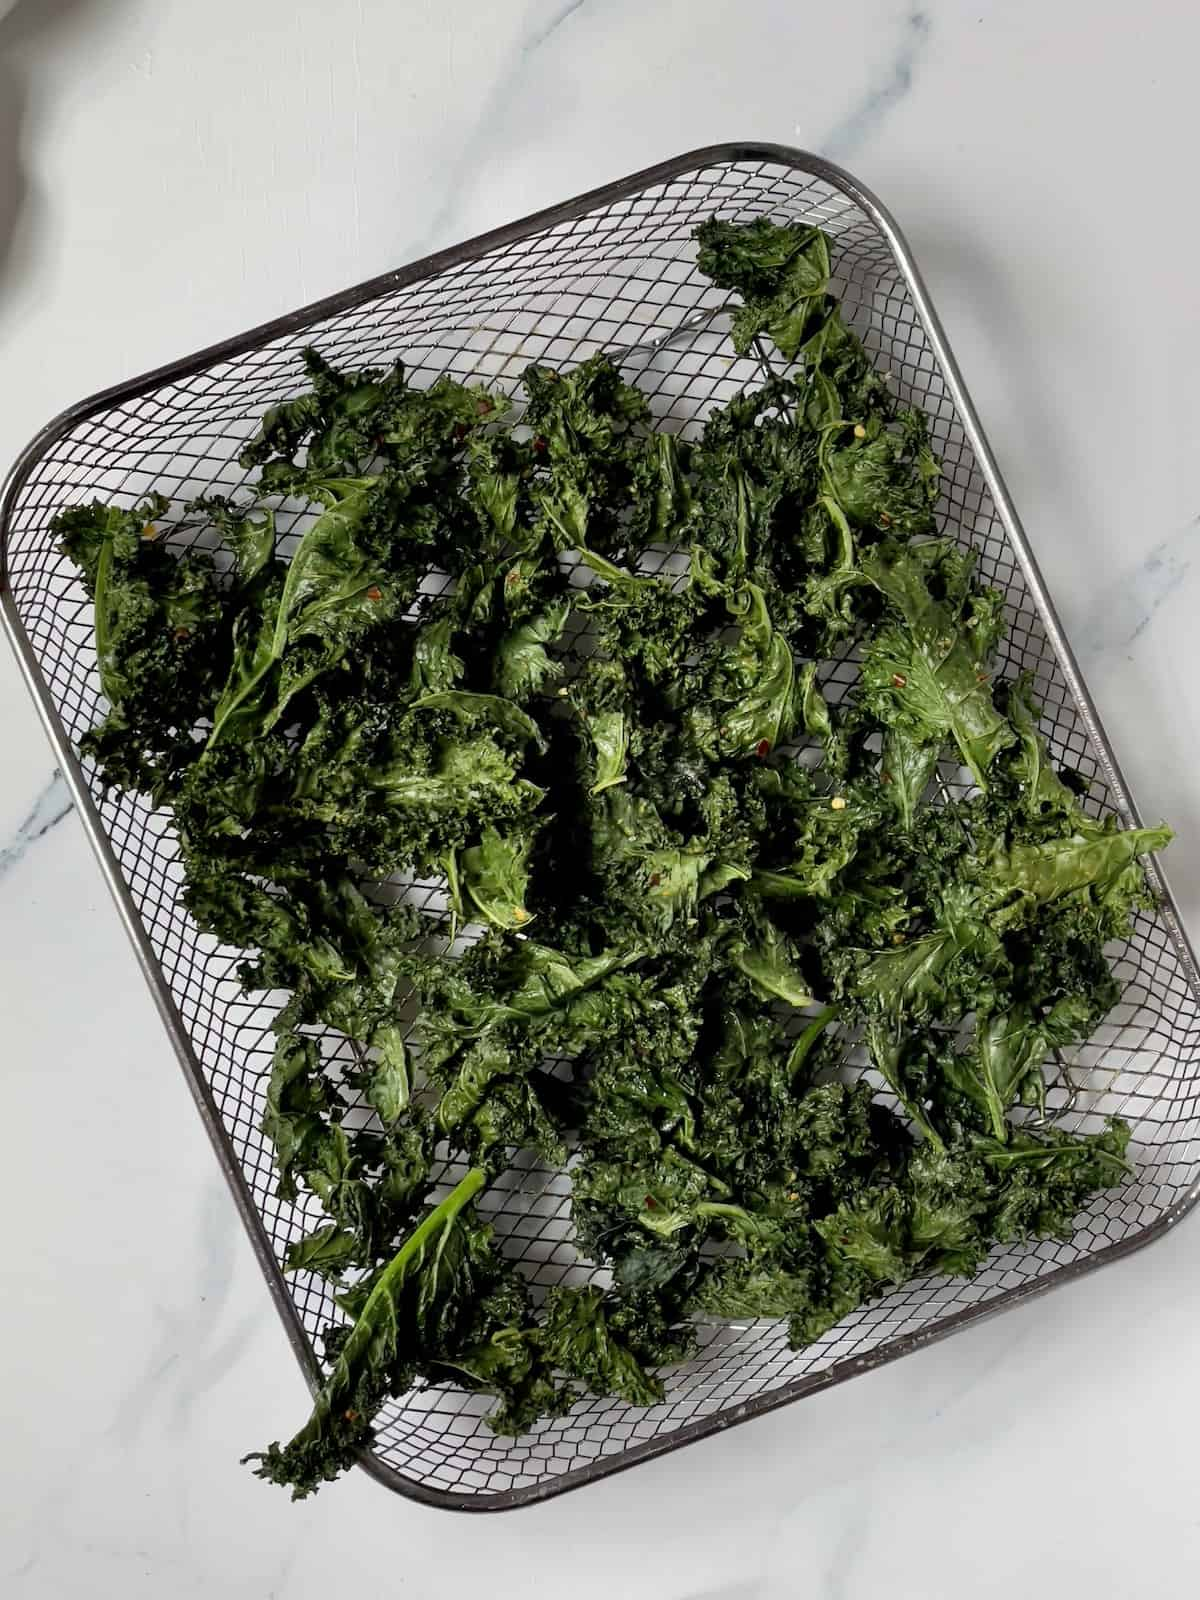 cooked kale chips in an air fryer basket